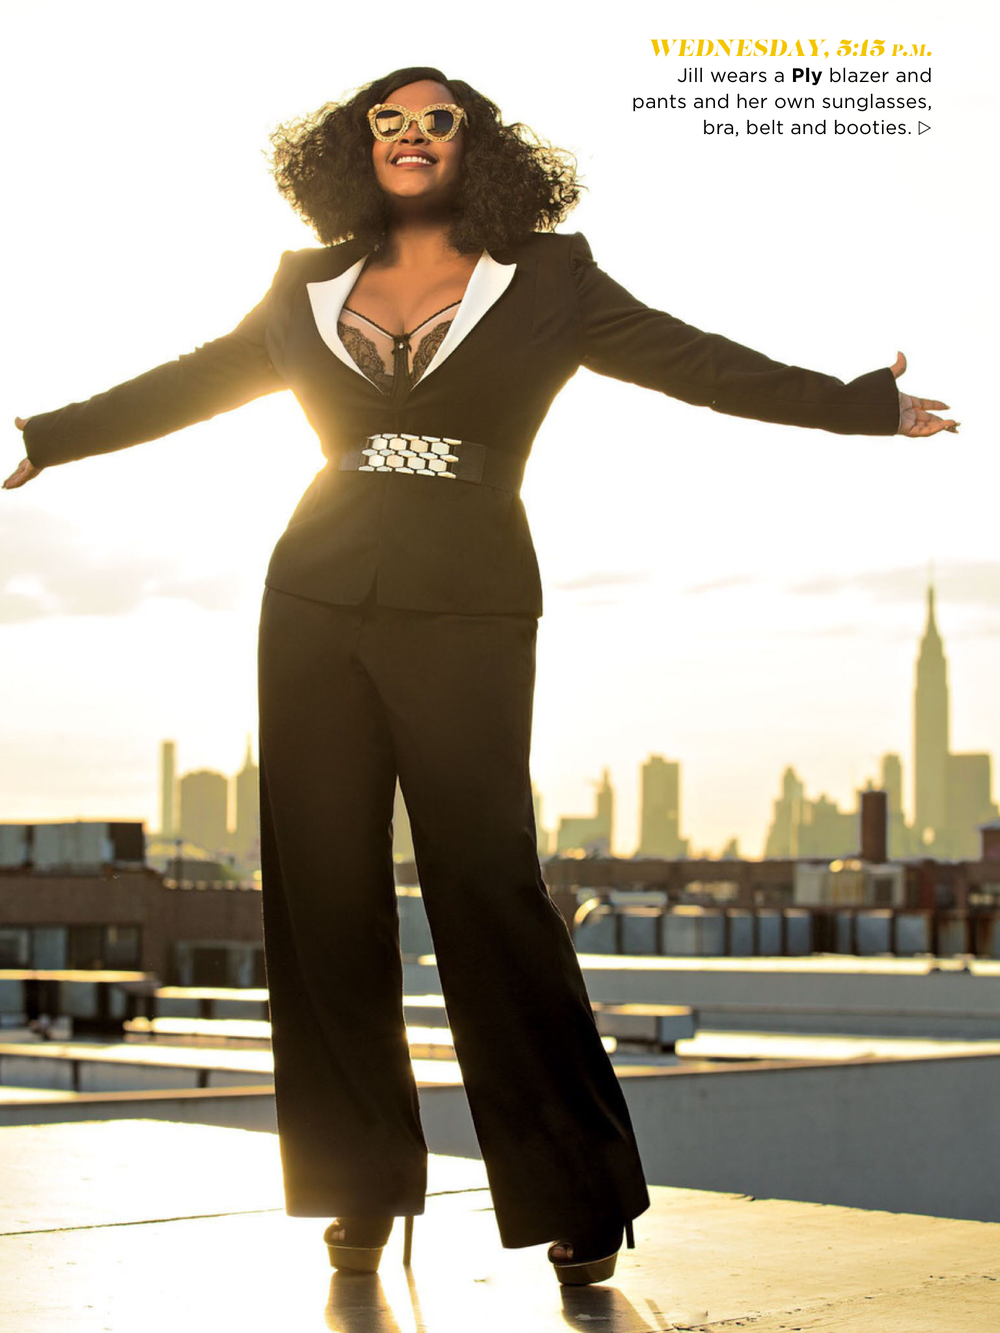 Jill Scott is wearing PLY jacket style #500 http://www.plyapparel.com/shop-ready-to-wear/style-500 and PLY troupe style #301 http://www.plyapparel.com/shop-ready-to-wear/trouser-style-301.  Click the links to pre-order yours now....